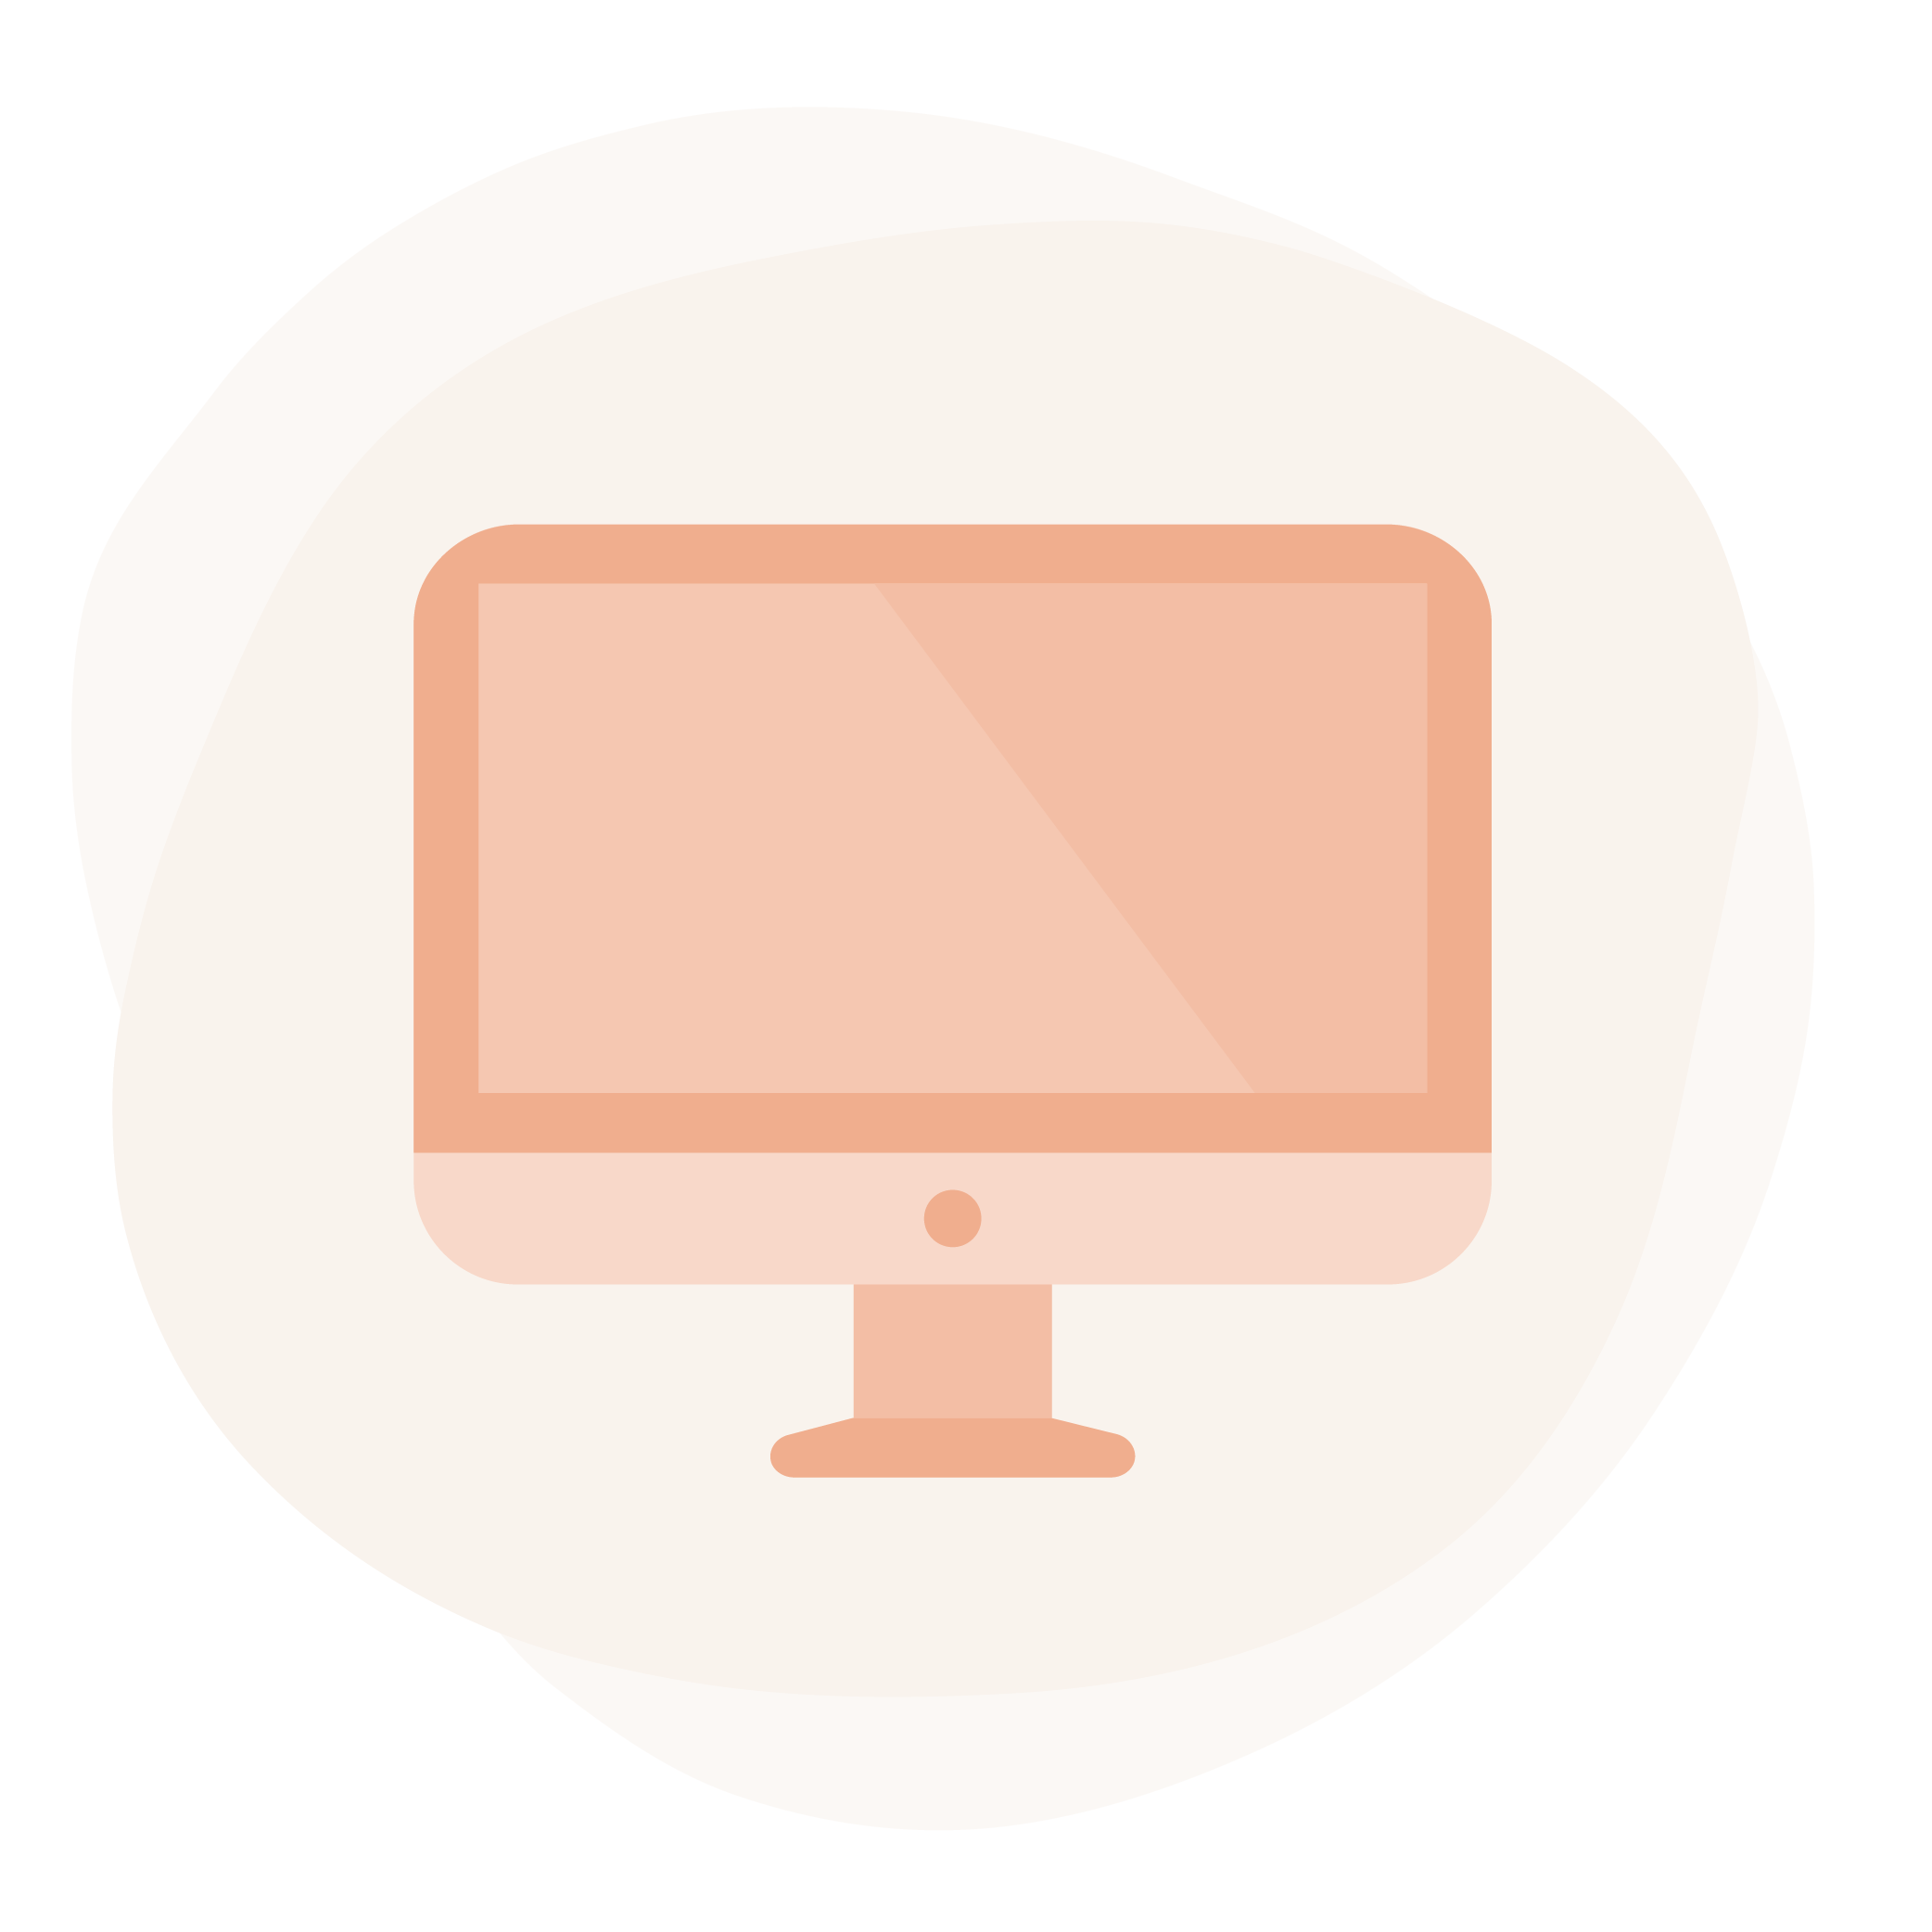 Organic off-white splotch shape featuring an illustration of a desktop computer monitor. It is in various shades of salmon and resembles a an iMac monitor.